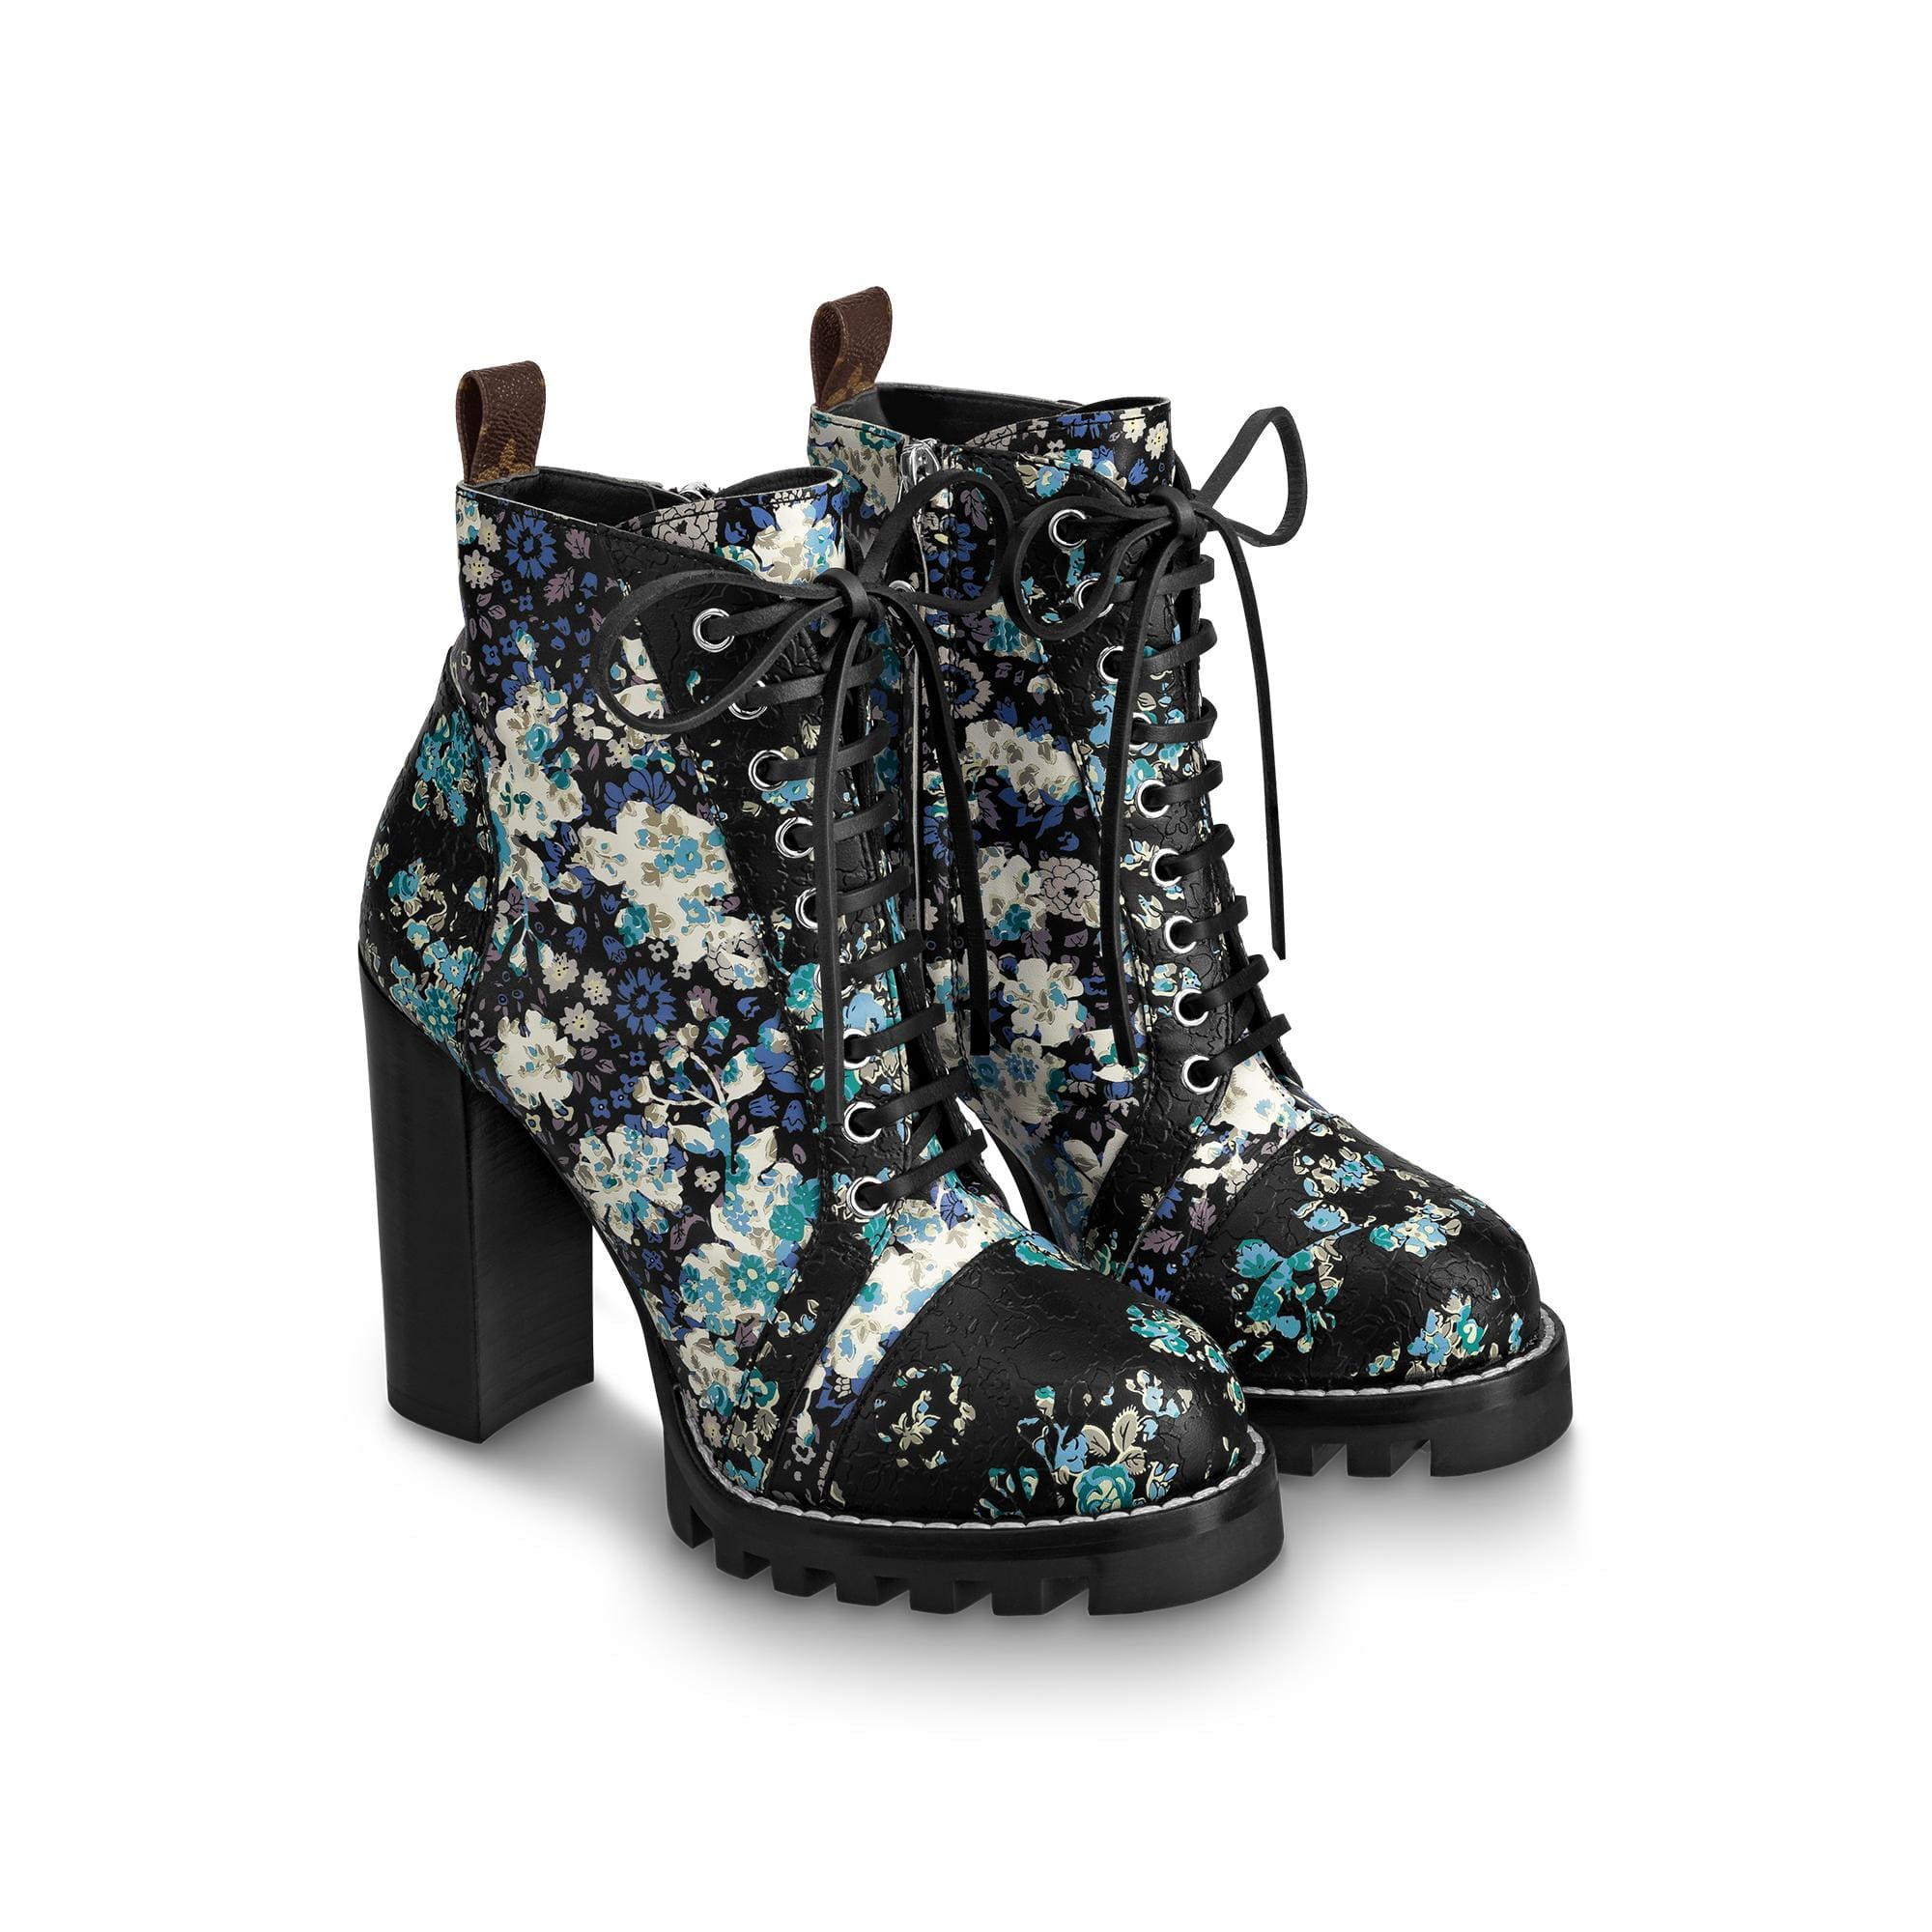 유럽직배송 루이비통 LOUIS VUITTON Star Trail Ankle Boots 1A5MZI